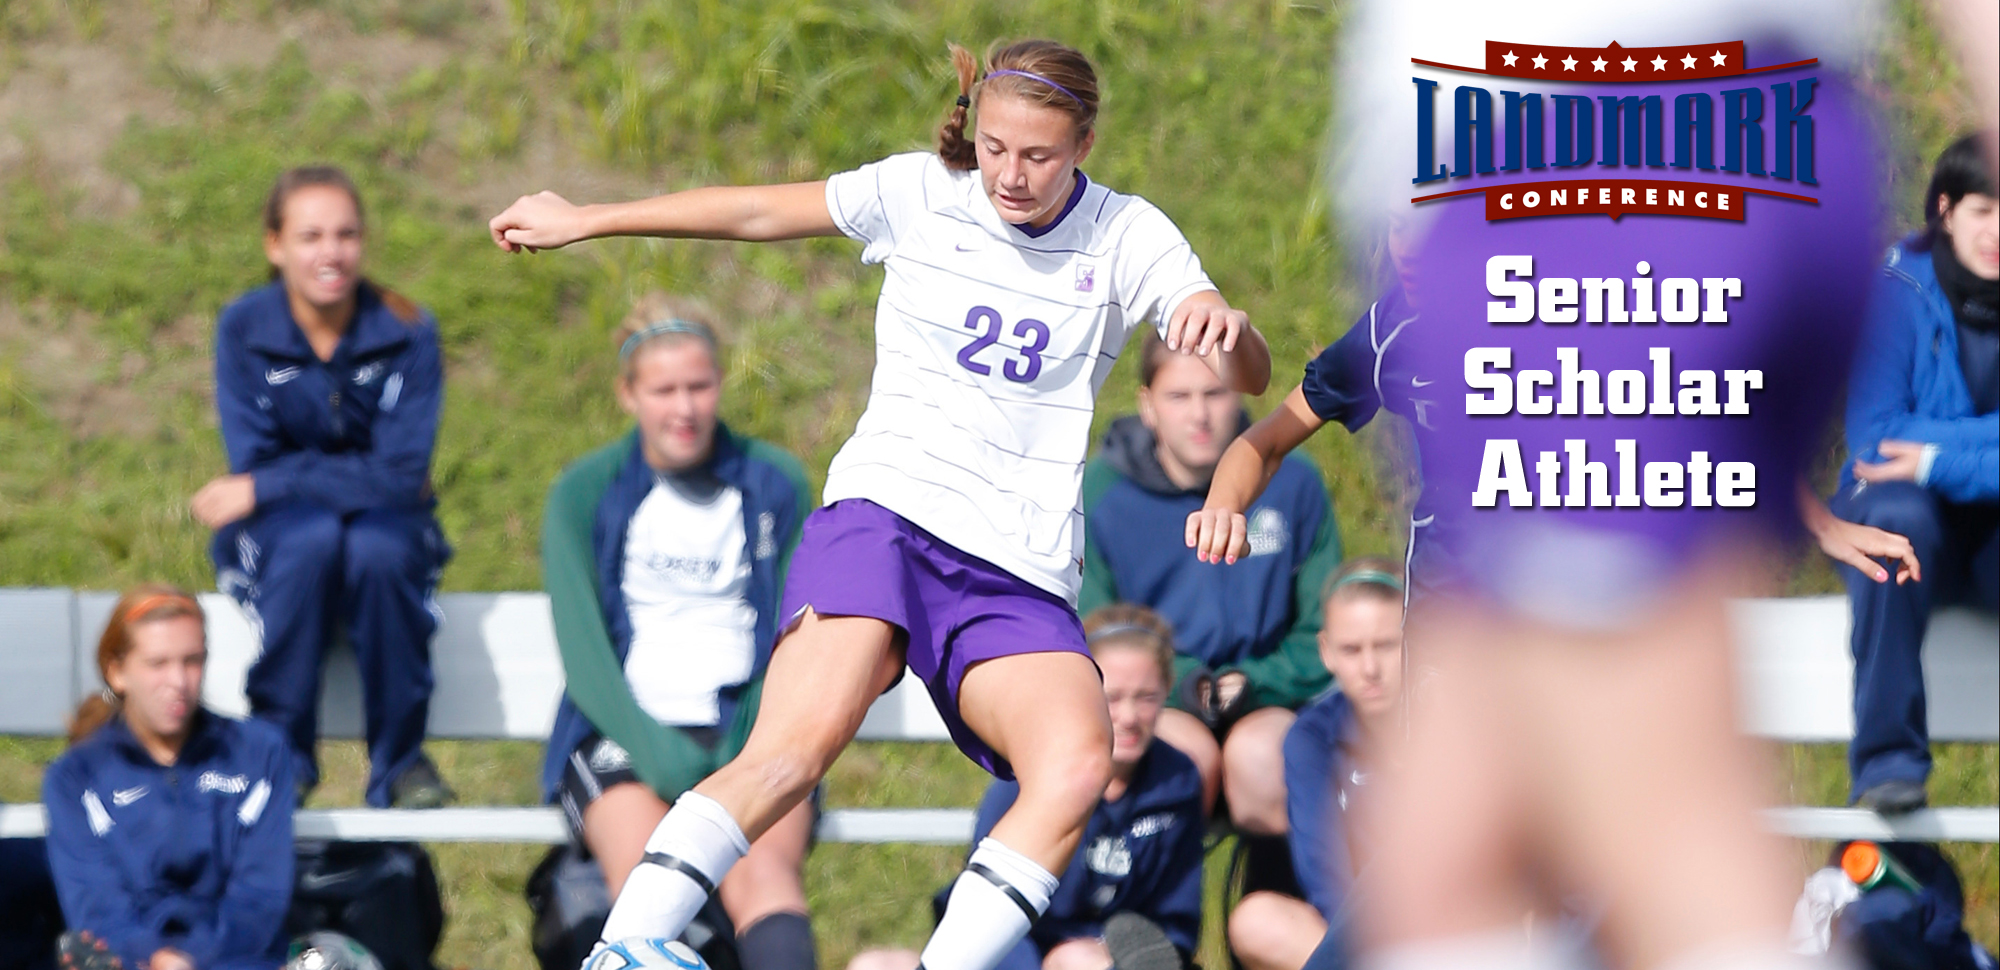 Casey Named Landmark Conference Senior Scholar Athlete For Women's Soccer